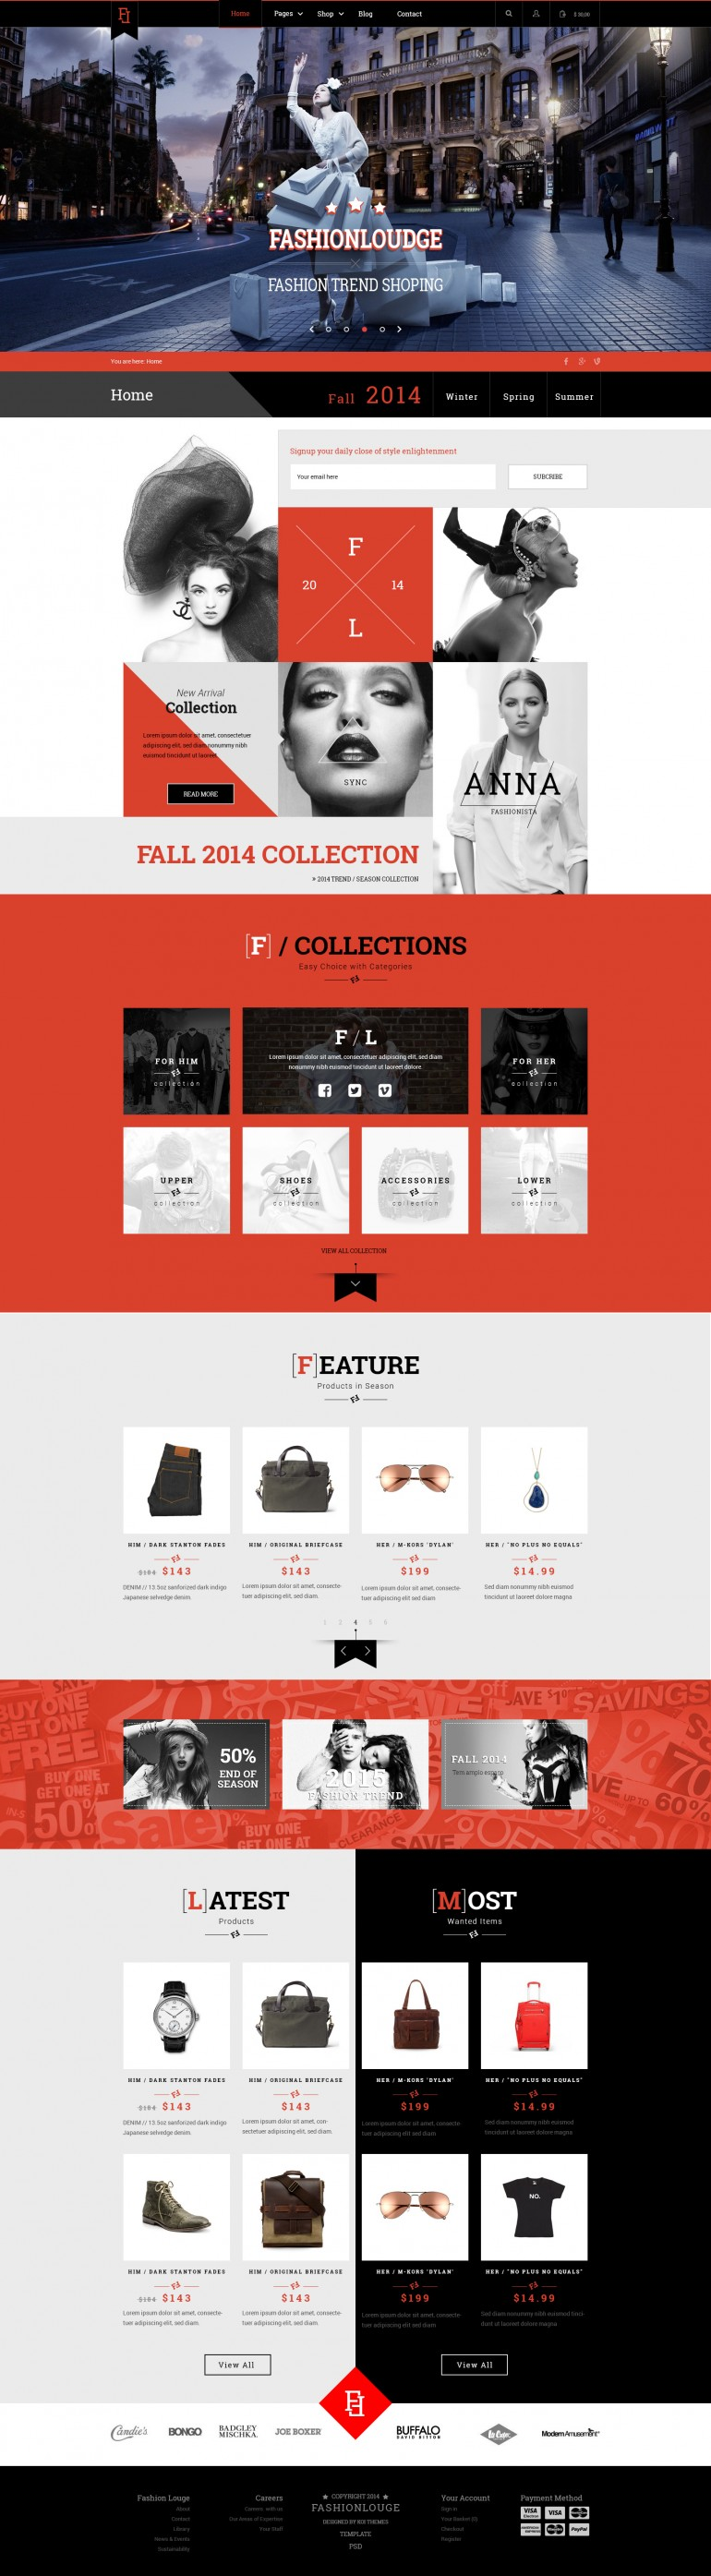 http://themeforest.net/item/fashion-loudge-responsive-html-template/10681353